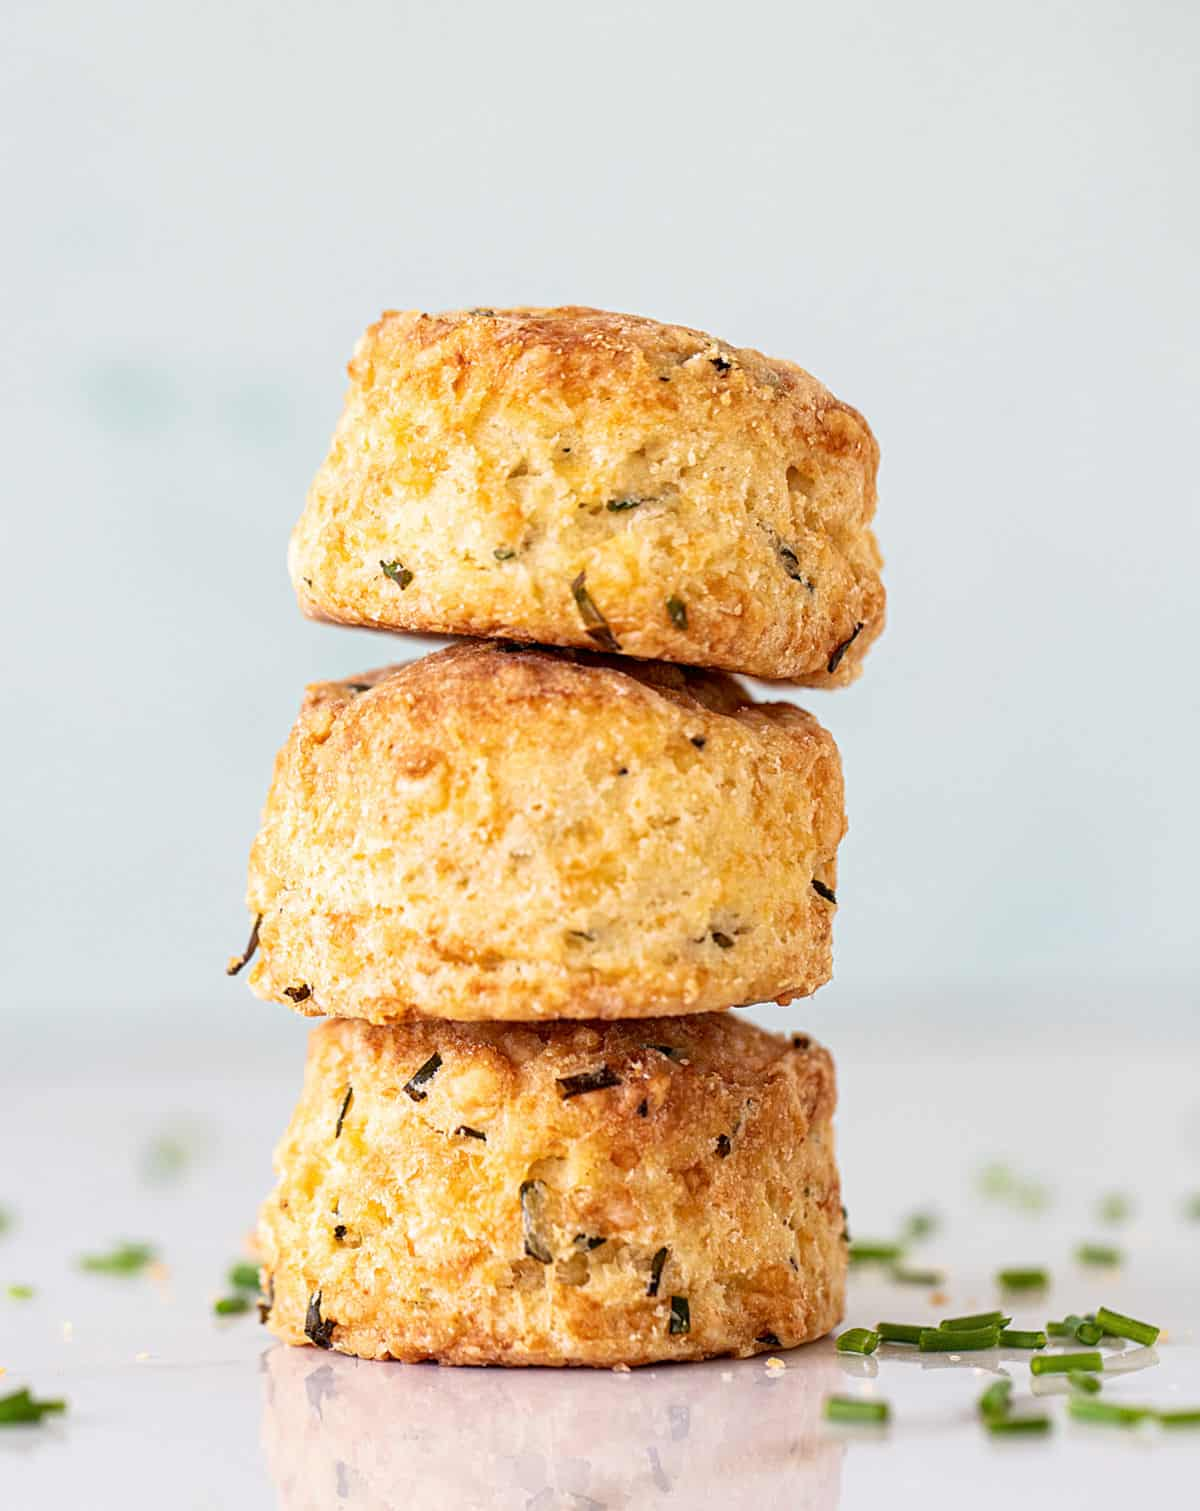 Stack of three scones on light colored surface and background